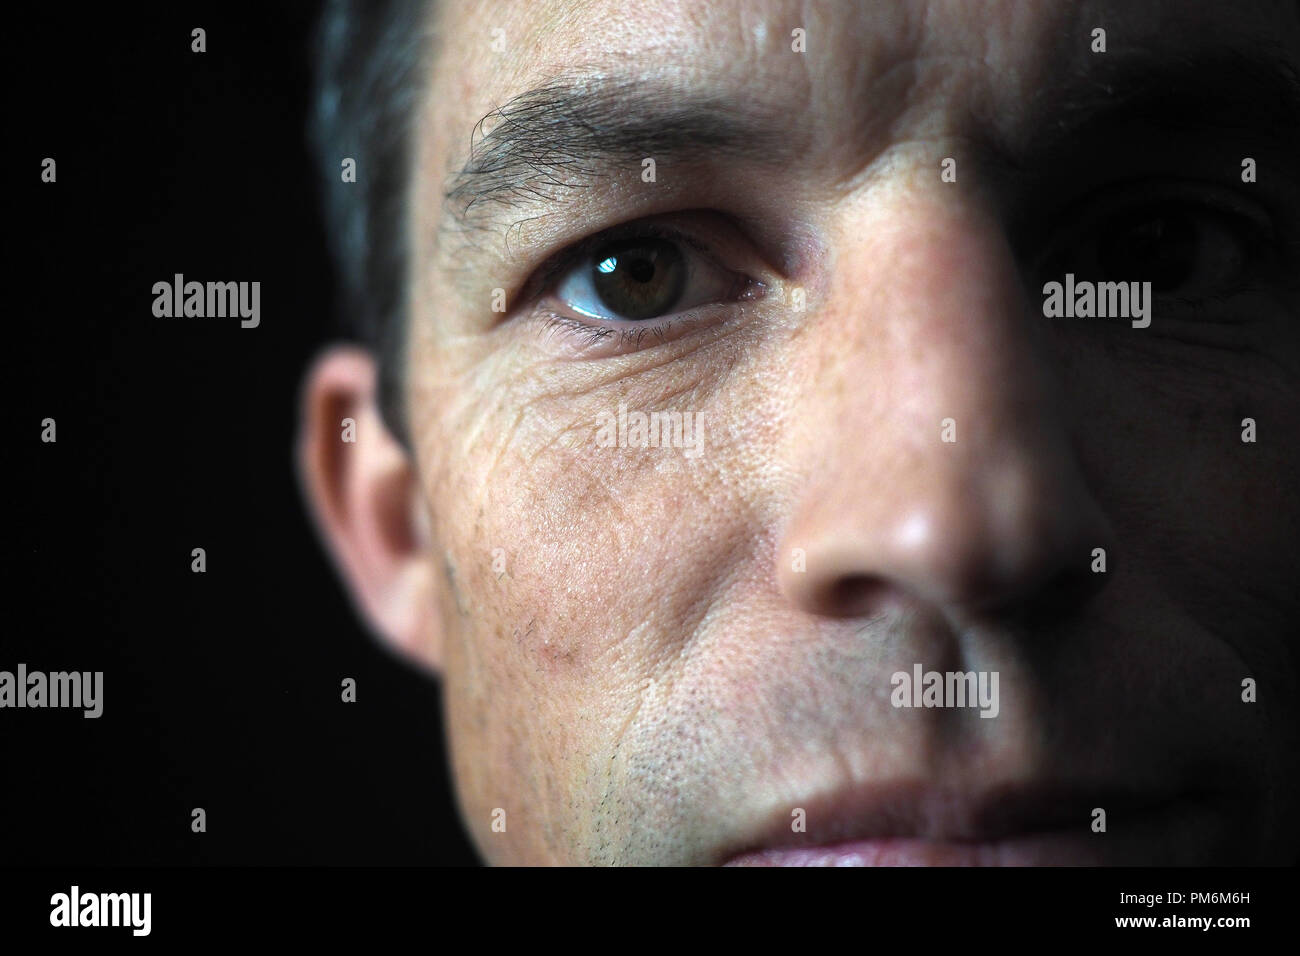 Portrait of man on black background, close up on eye Stock Photo